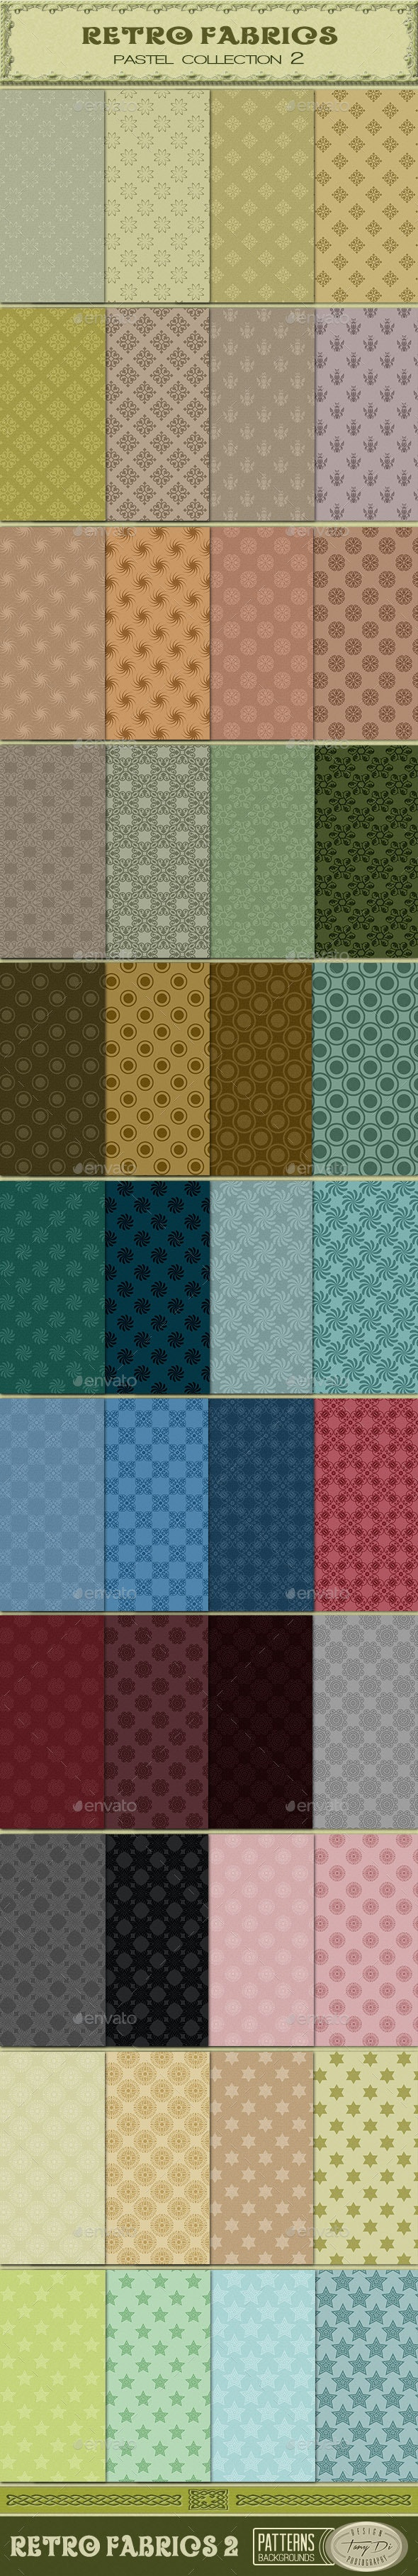 Retro Fabric Pastel Collection 2 - Patterns Backgrounds